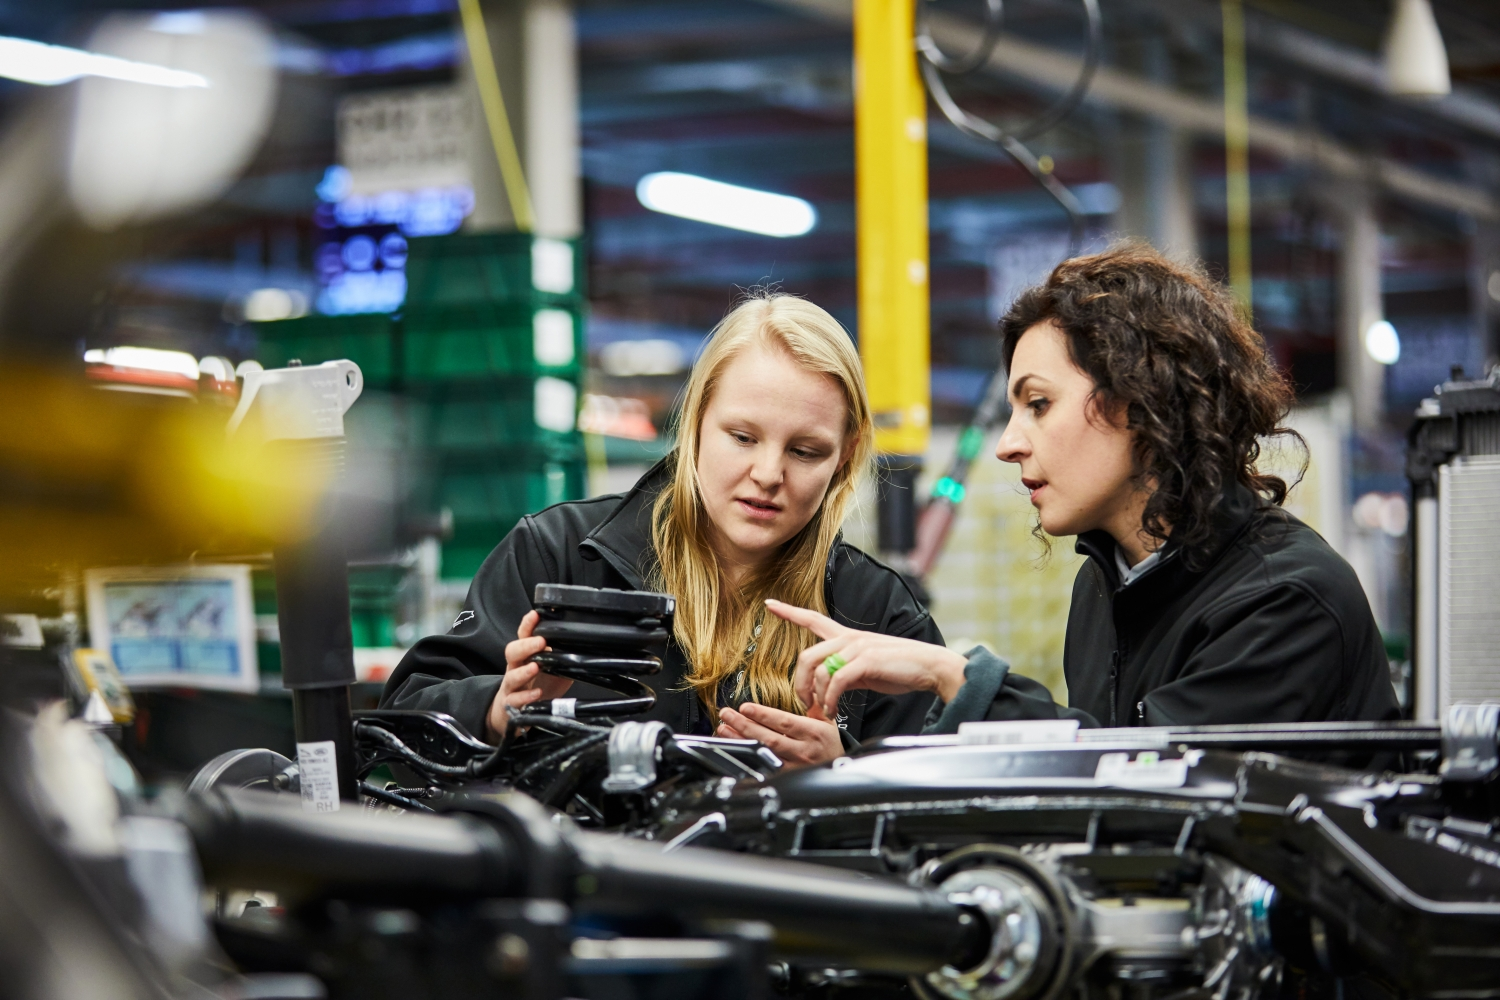 DR Lucia Carassiti & Sophie Wakeford (Morsa Images) - Women in Engineering - Solihull